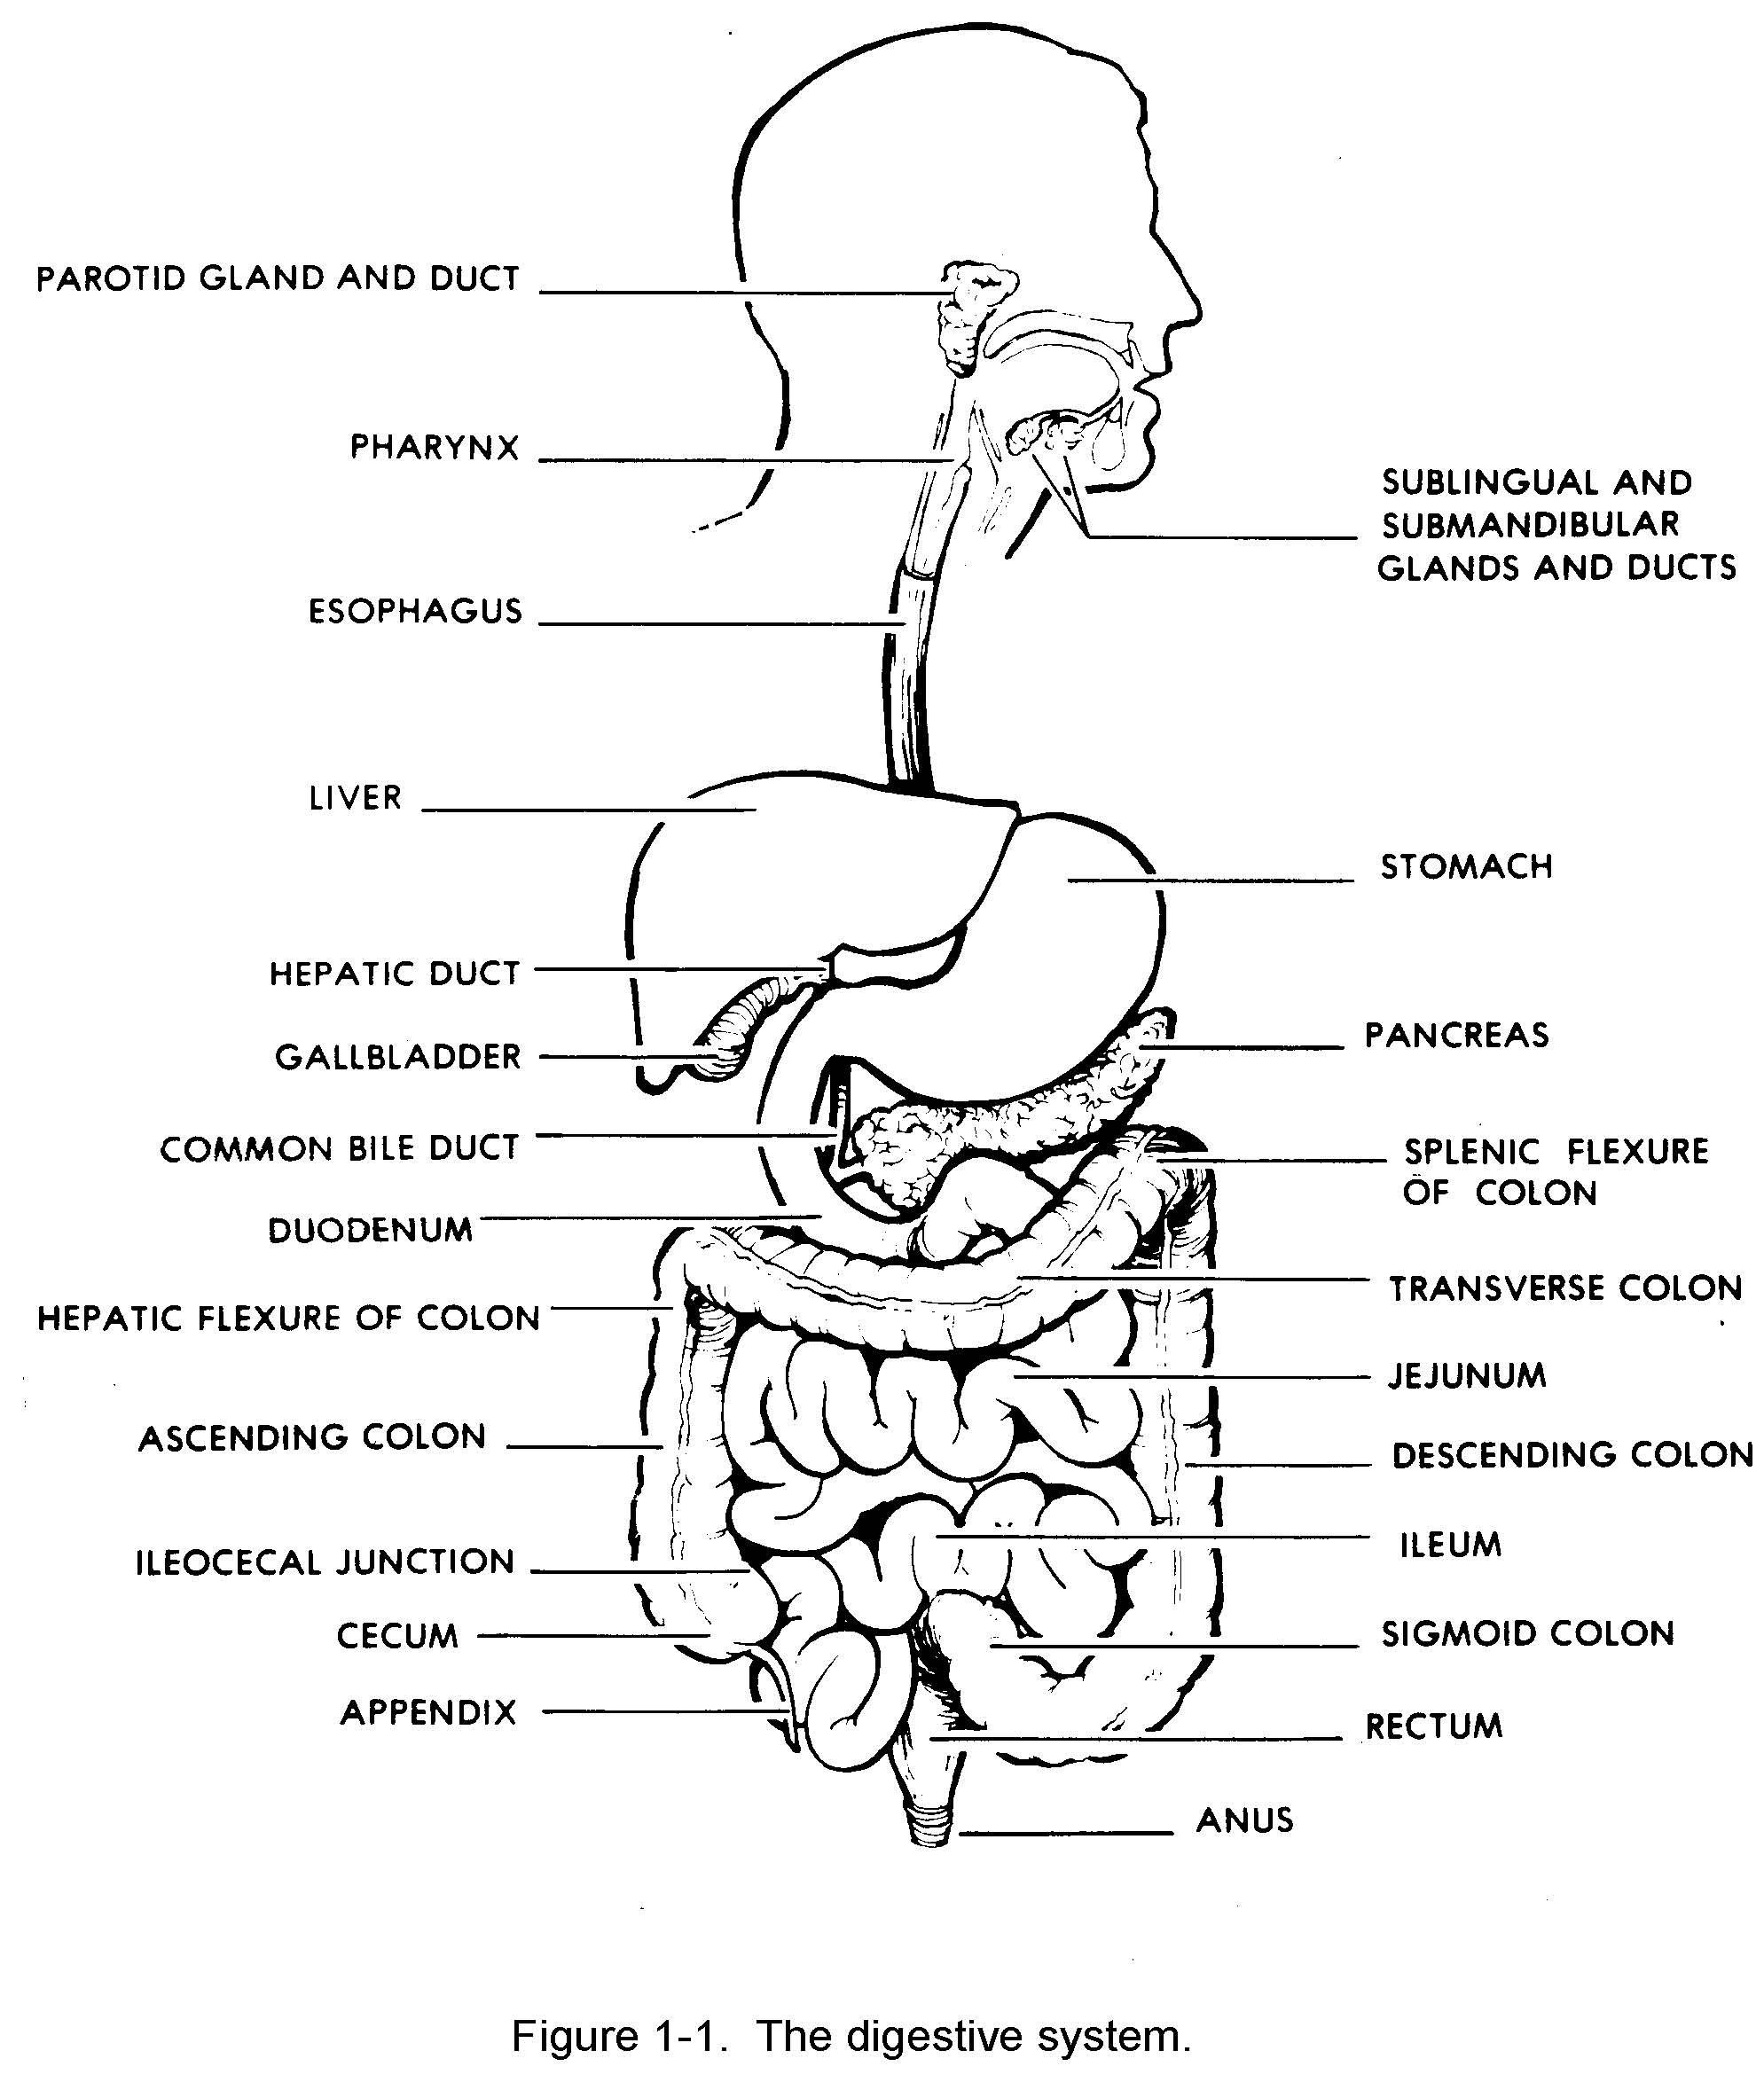 Simple Digestive System Diagram Human Digestive System